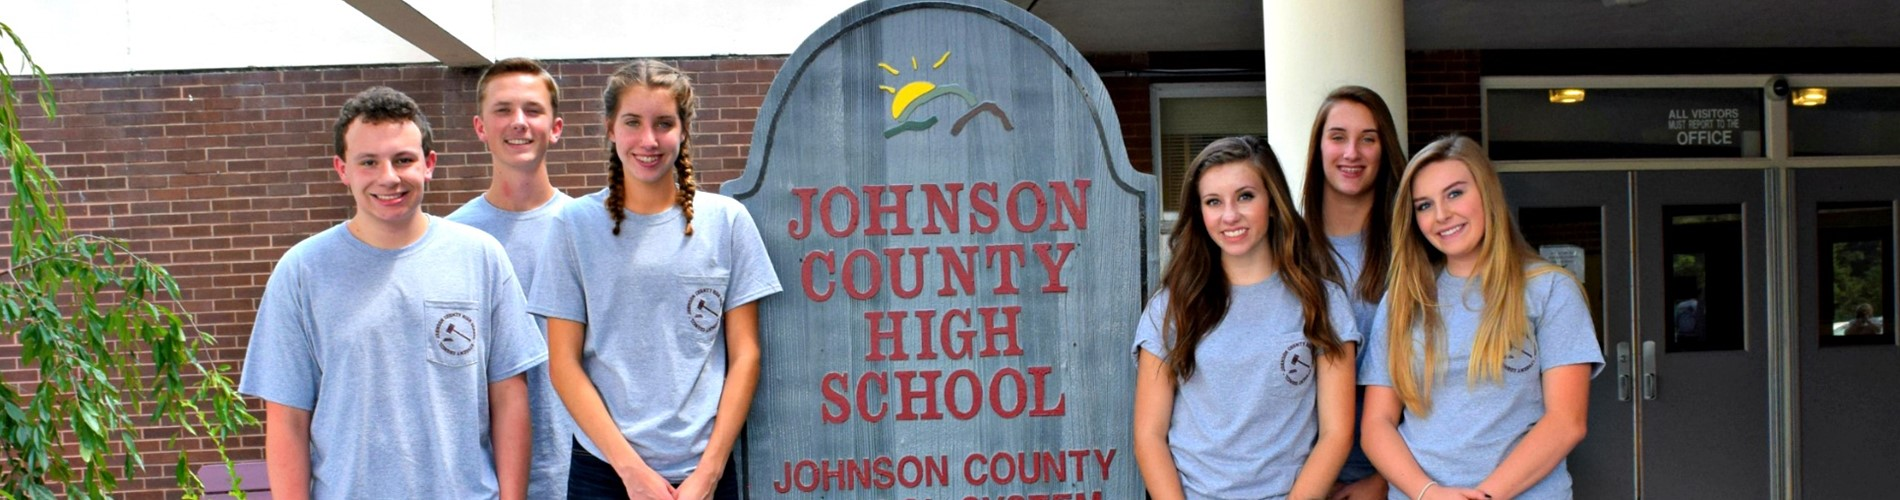 Students standing in front of the high school entrance sign